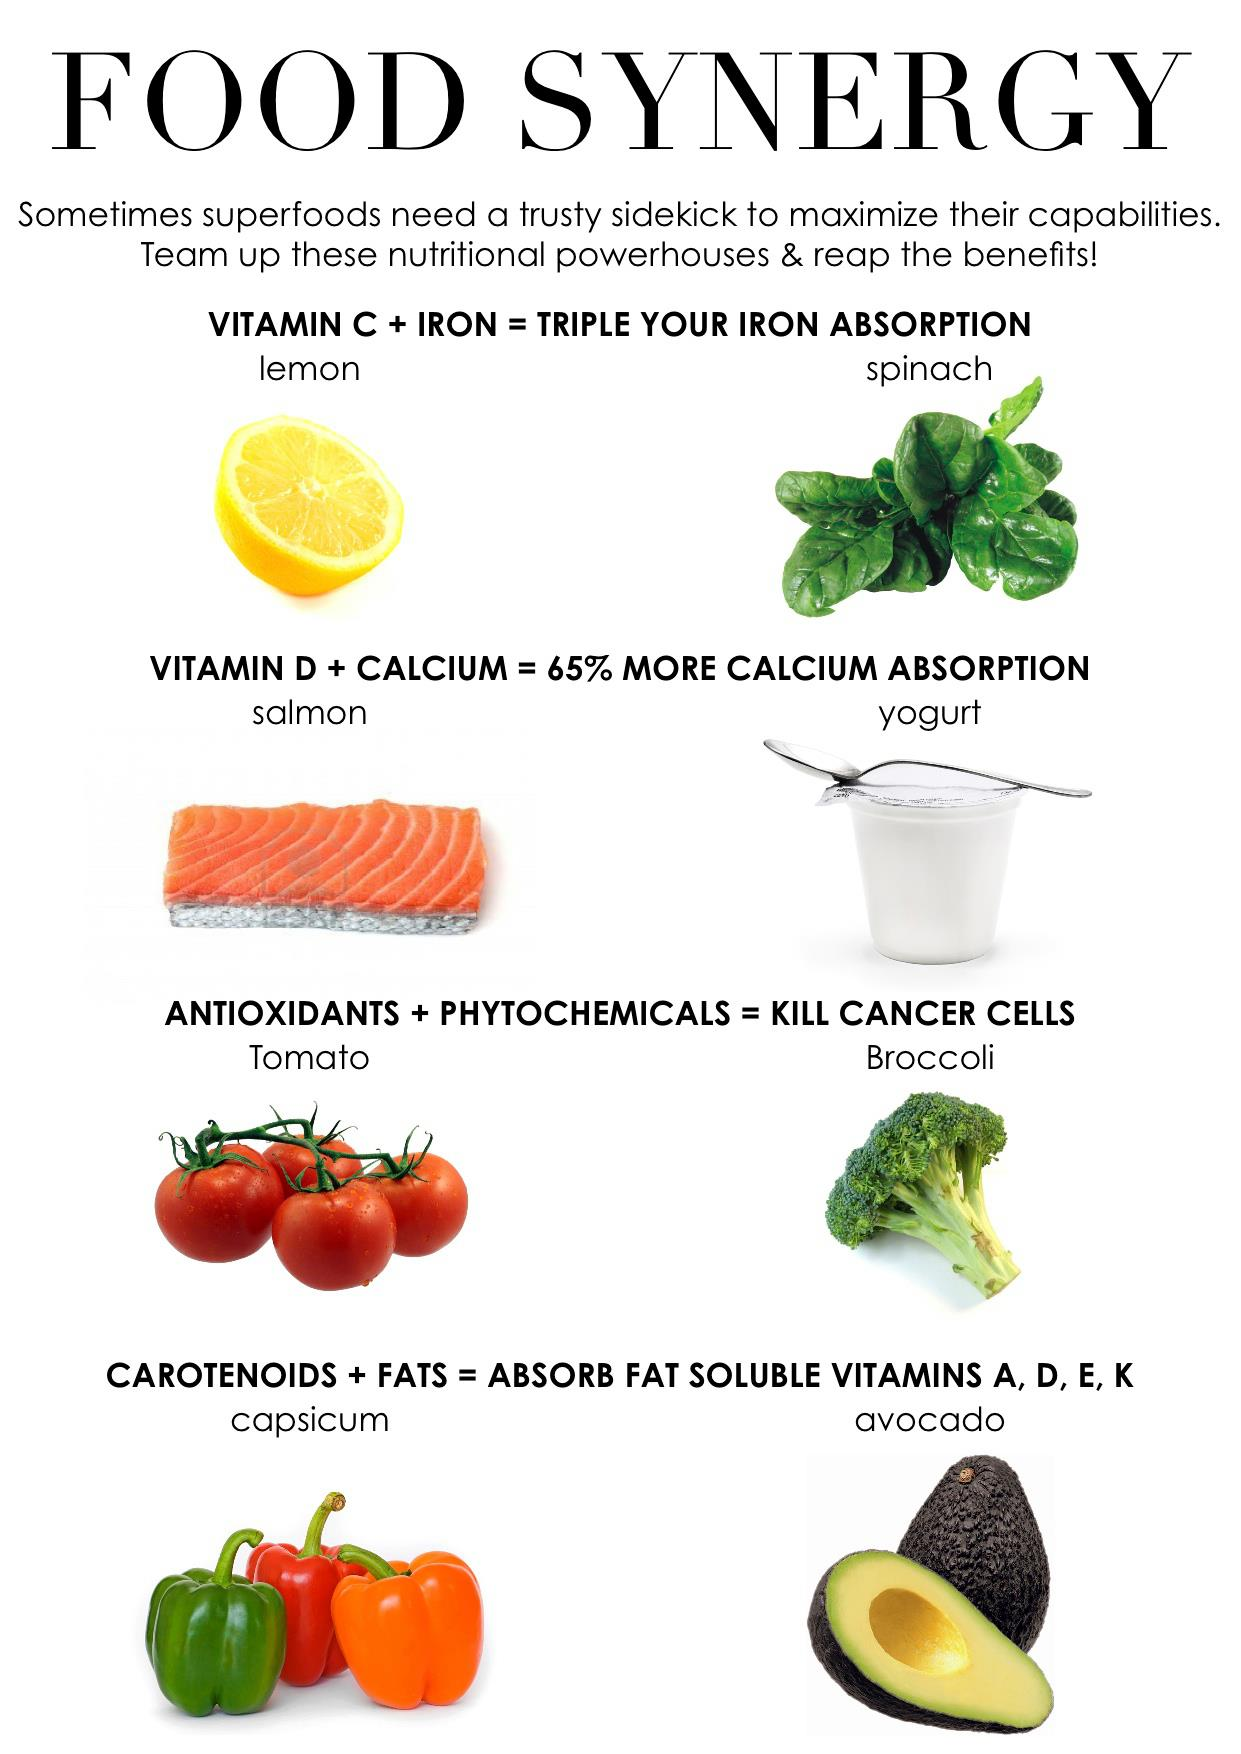 Discussion on this topic: Foods to Avoid on a Detox Diet, foods-to-avoid-on-a-detox-diet/